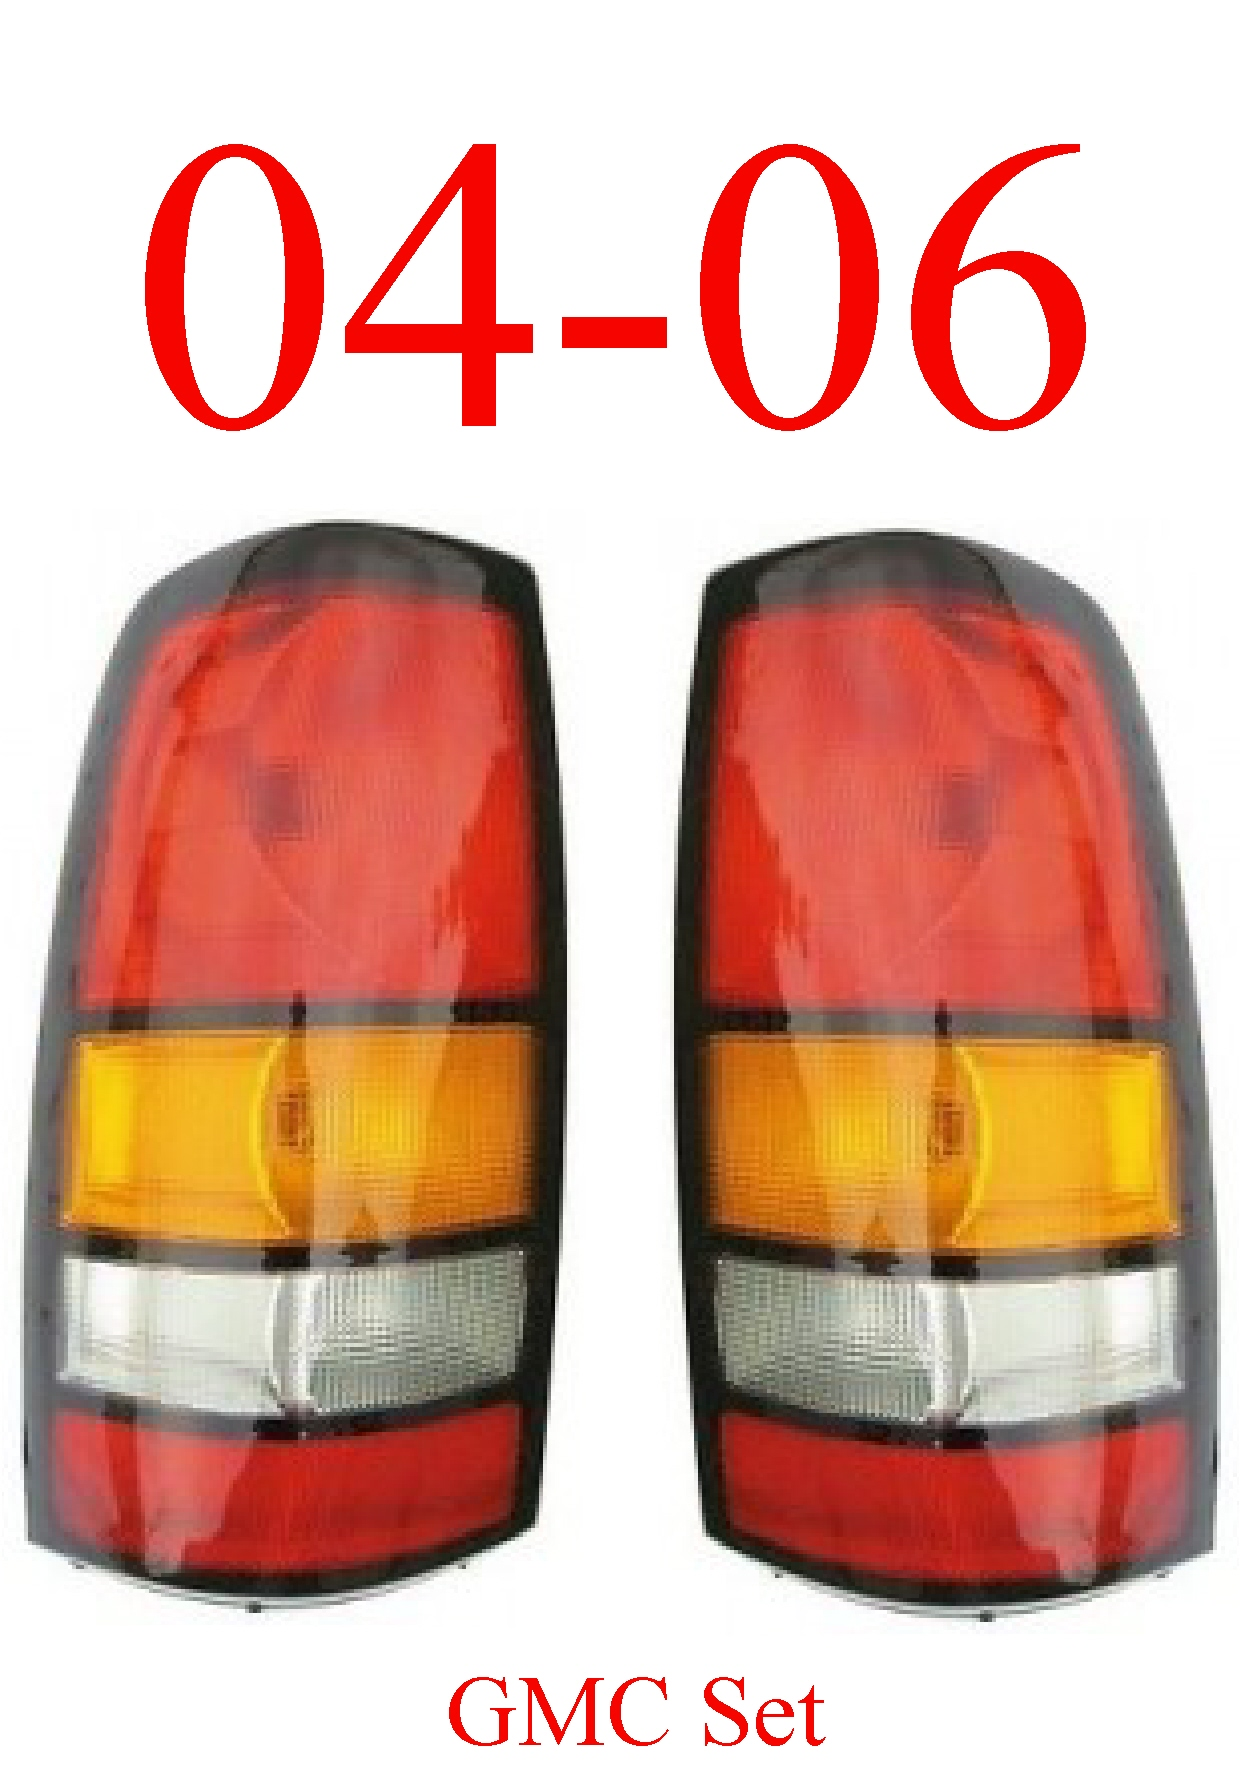 04-06 GMC Truck Tail Light Set Assembly